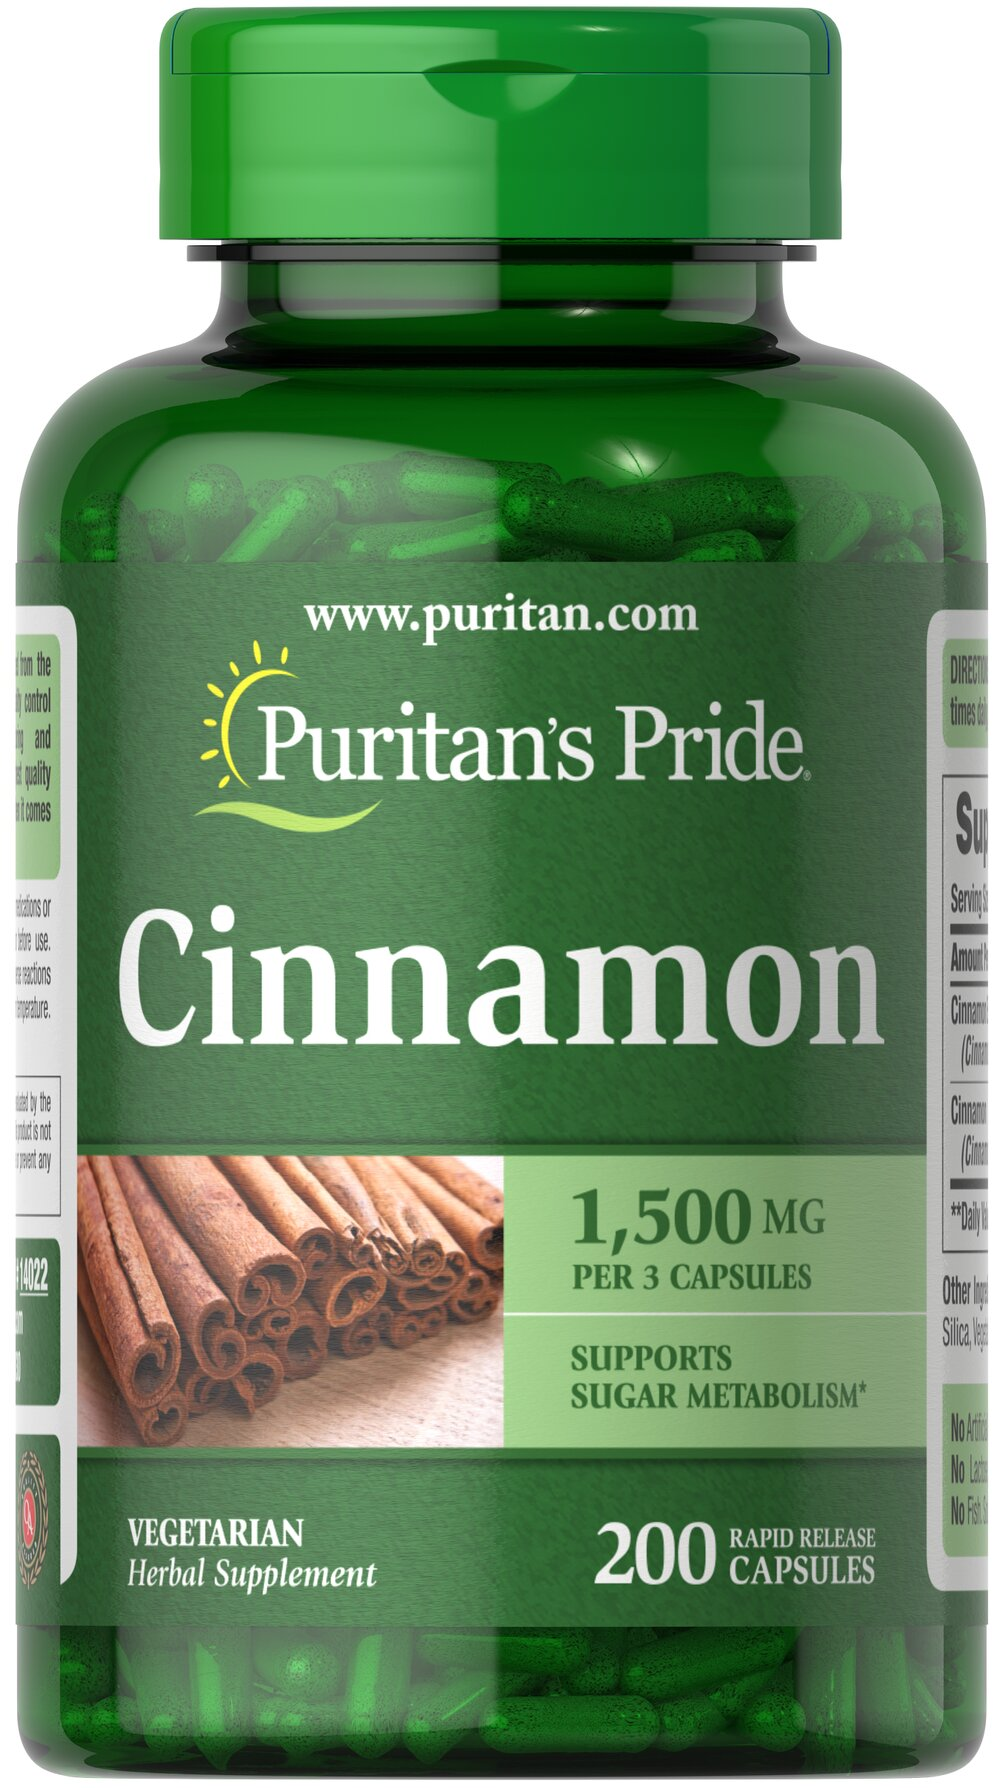 Cinnamon 500 mg <p></p><p>This ancient herb has been referenced in Oriental scripts dating back thousands of years. Did you know that besides use as a culinary spice, cinnamon has been noted for its antioxidant properties?** As an herbal addition to your health program, cinnamon may help support sugar metabolism.** Puritan's Pride's preservative-free gelatin capsules contain pure milled herb powder. Puritan's Pride's Natural Whole Herb products utilize ground pl